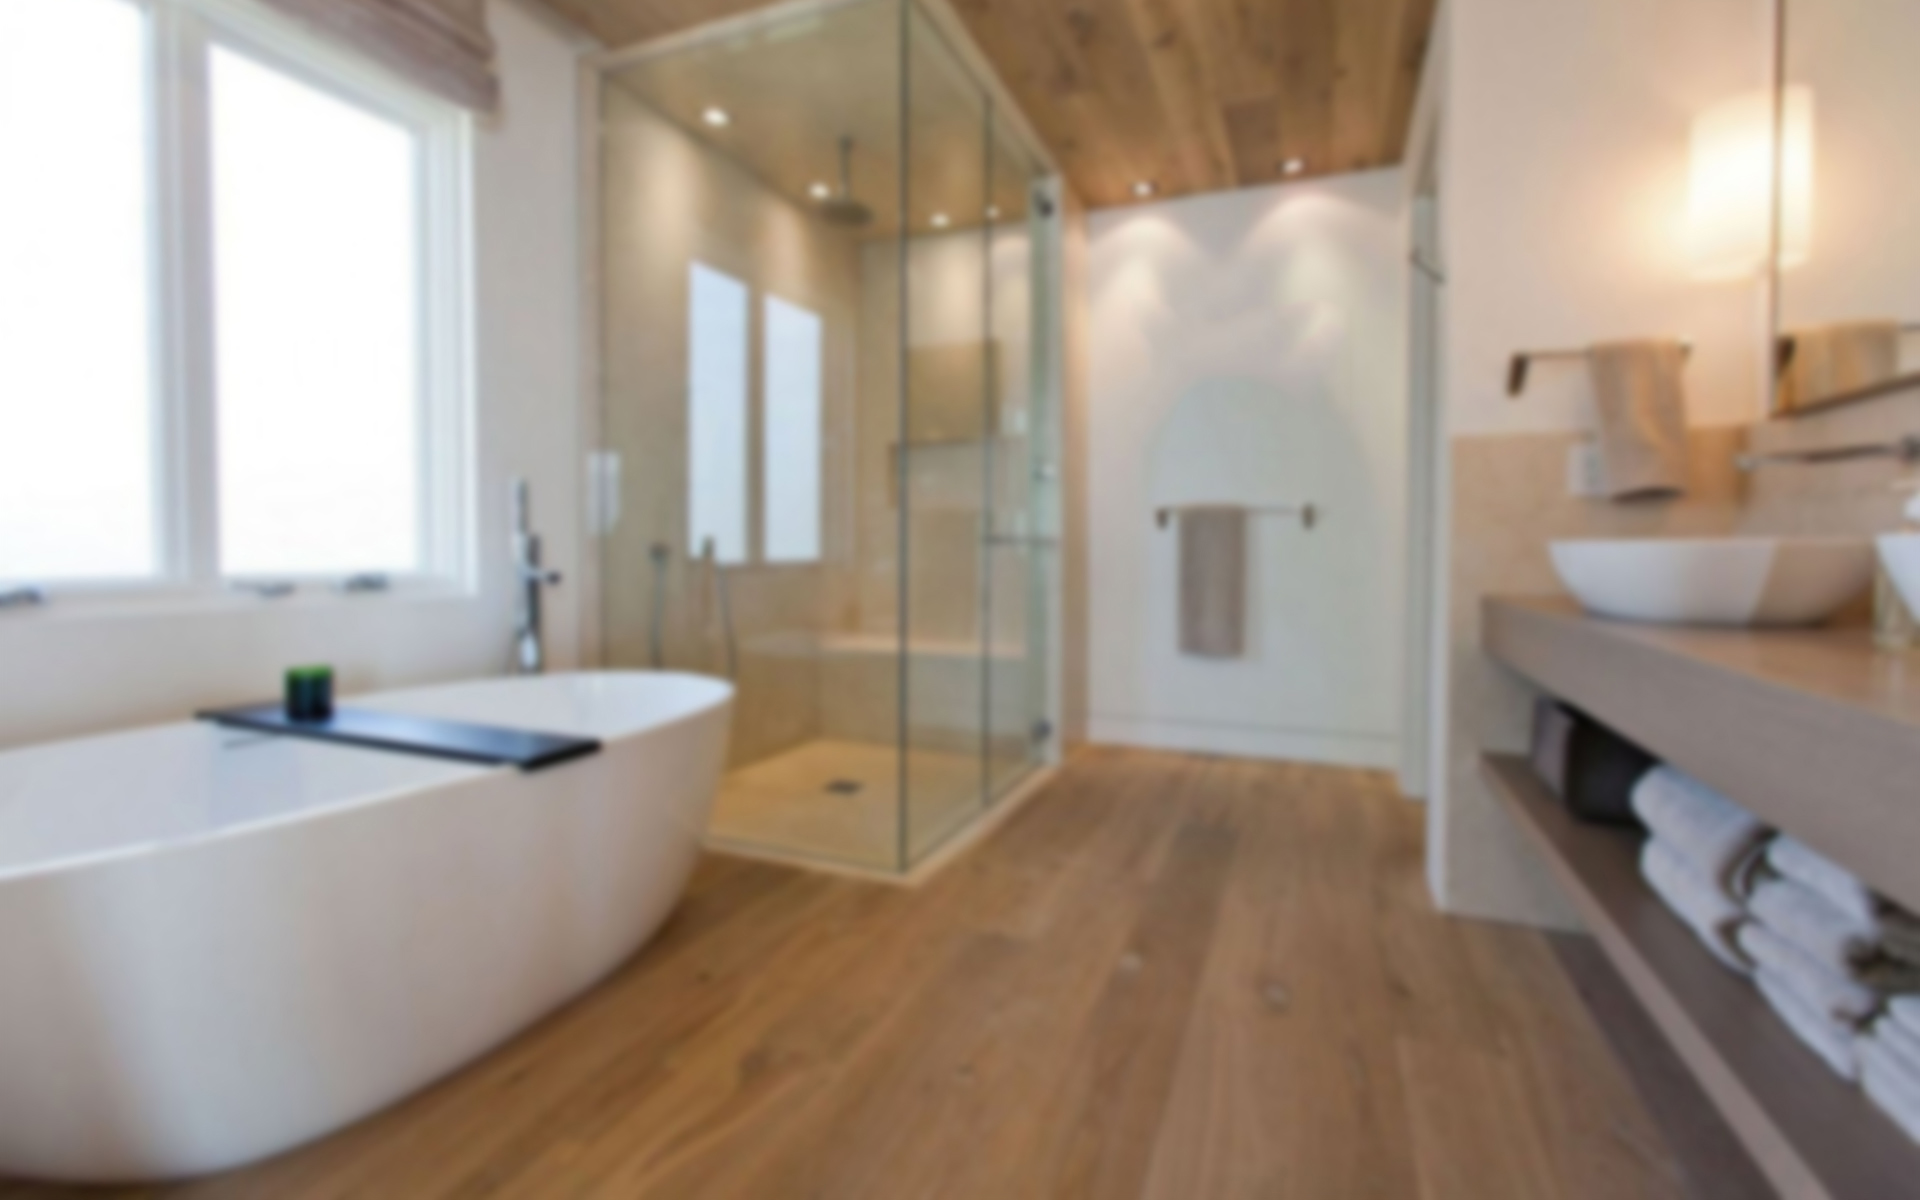 Bathroom renovations melbourne by melbourne bathroom company How long does a bathroom renovation take